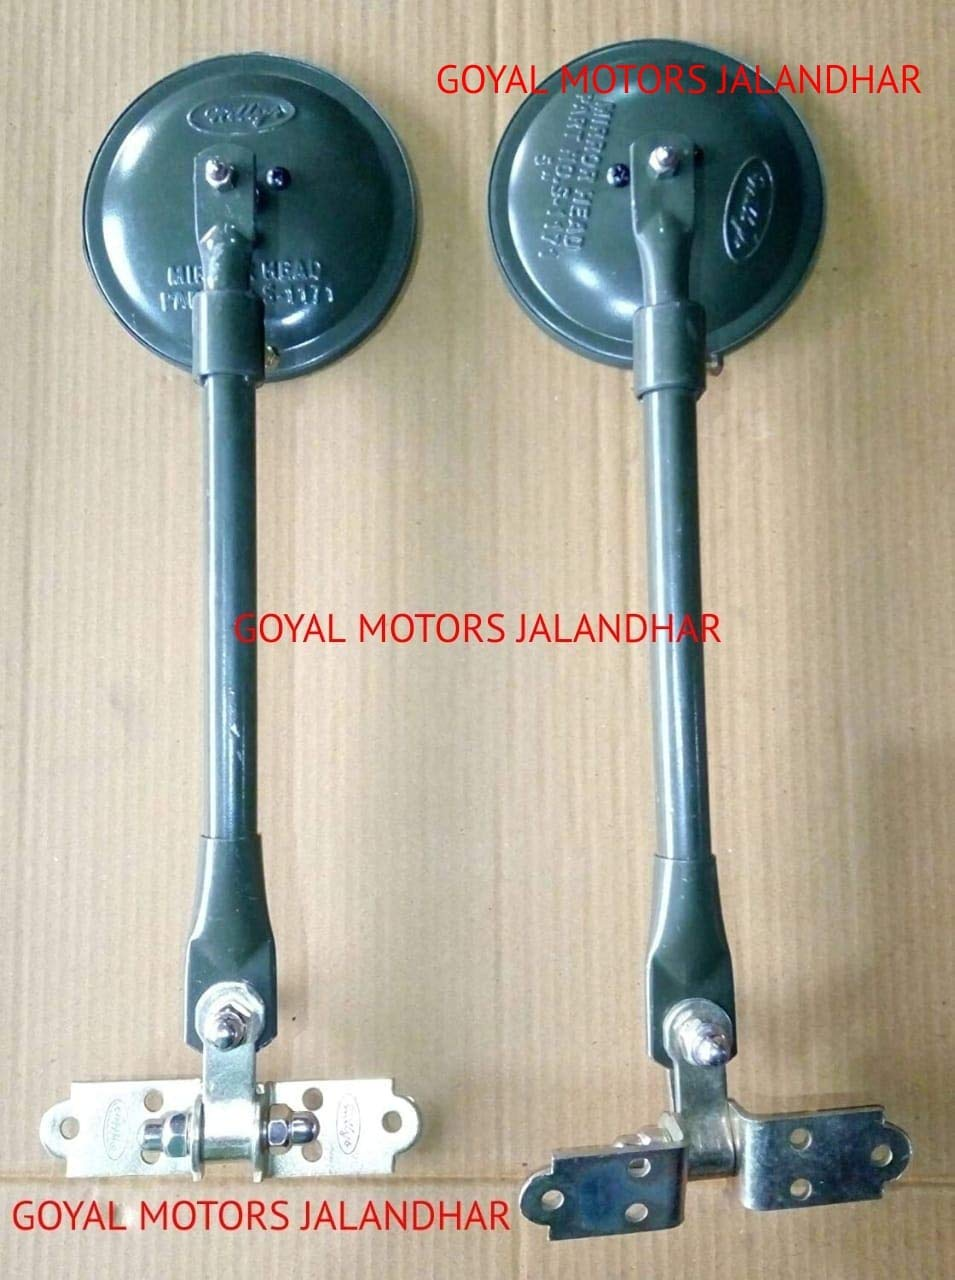 Willys Jeep Classic Green Colour Side Mirror Willys Jeep Spare Parts Willys Jeep Accessories Buy Online In Zimbabwe At Desertcart Co Zw Productid 159050297